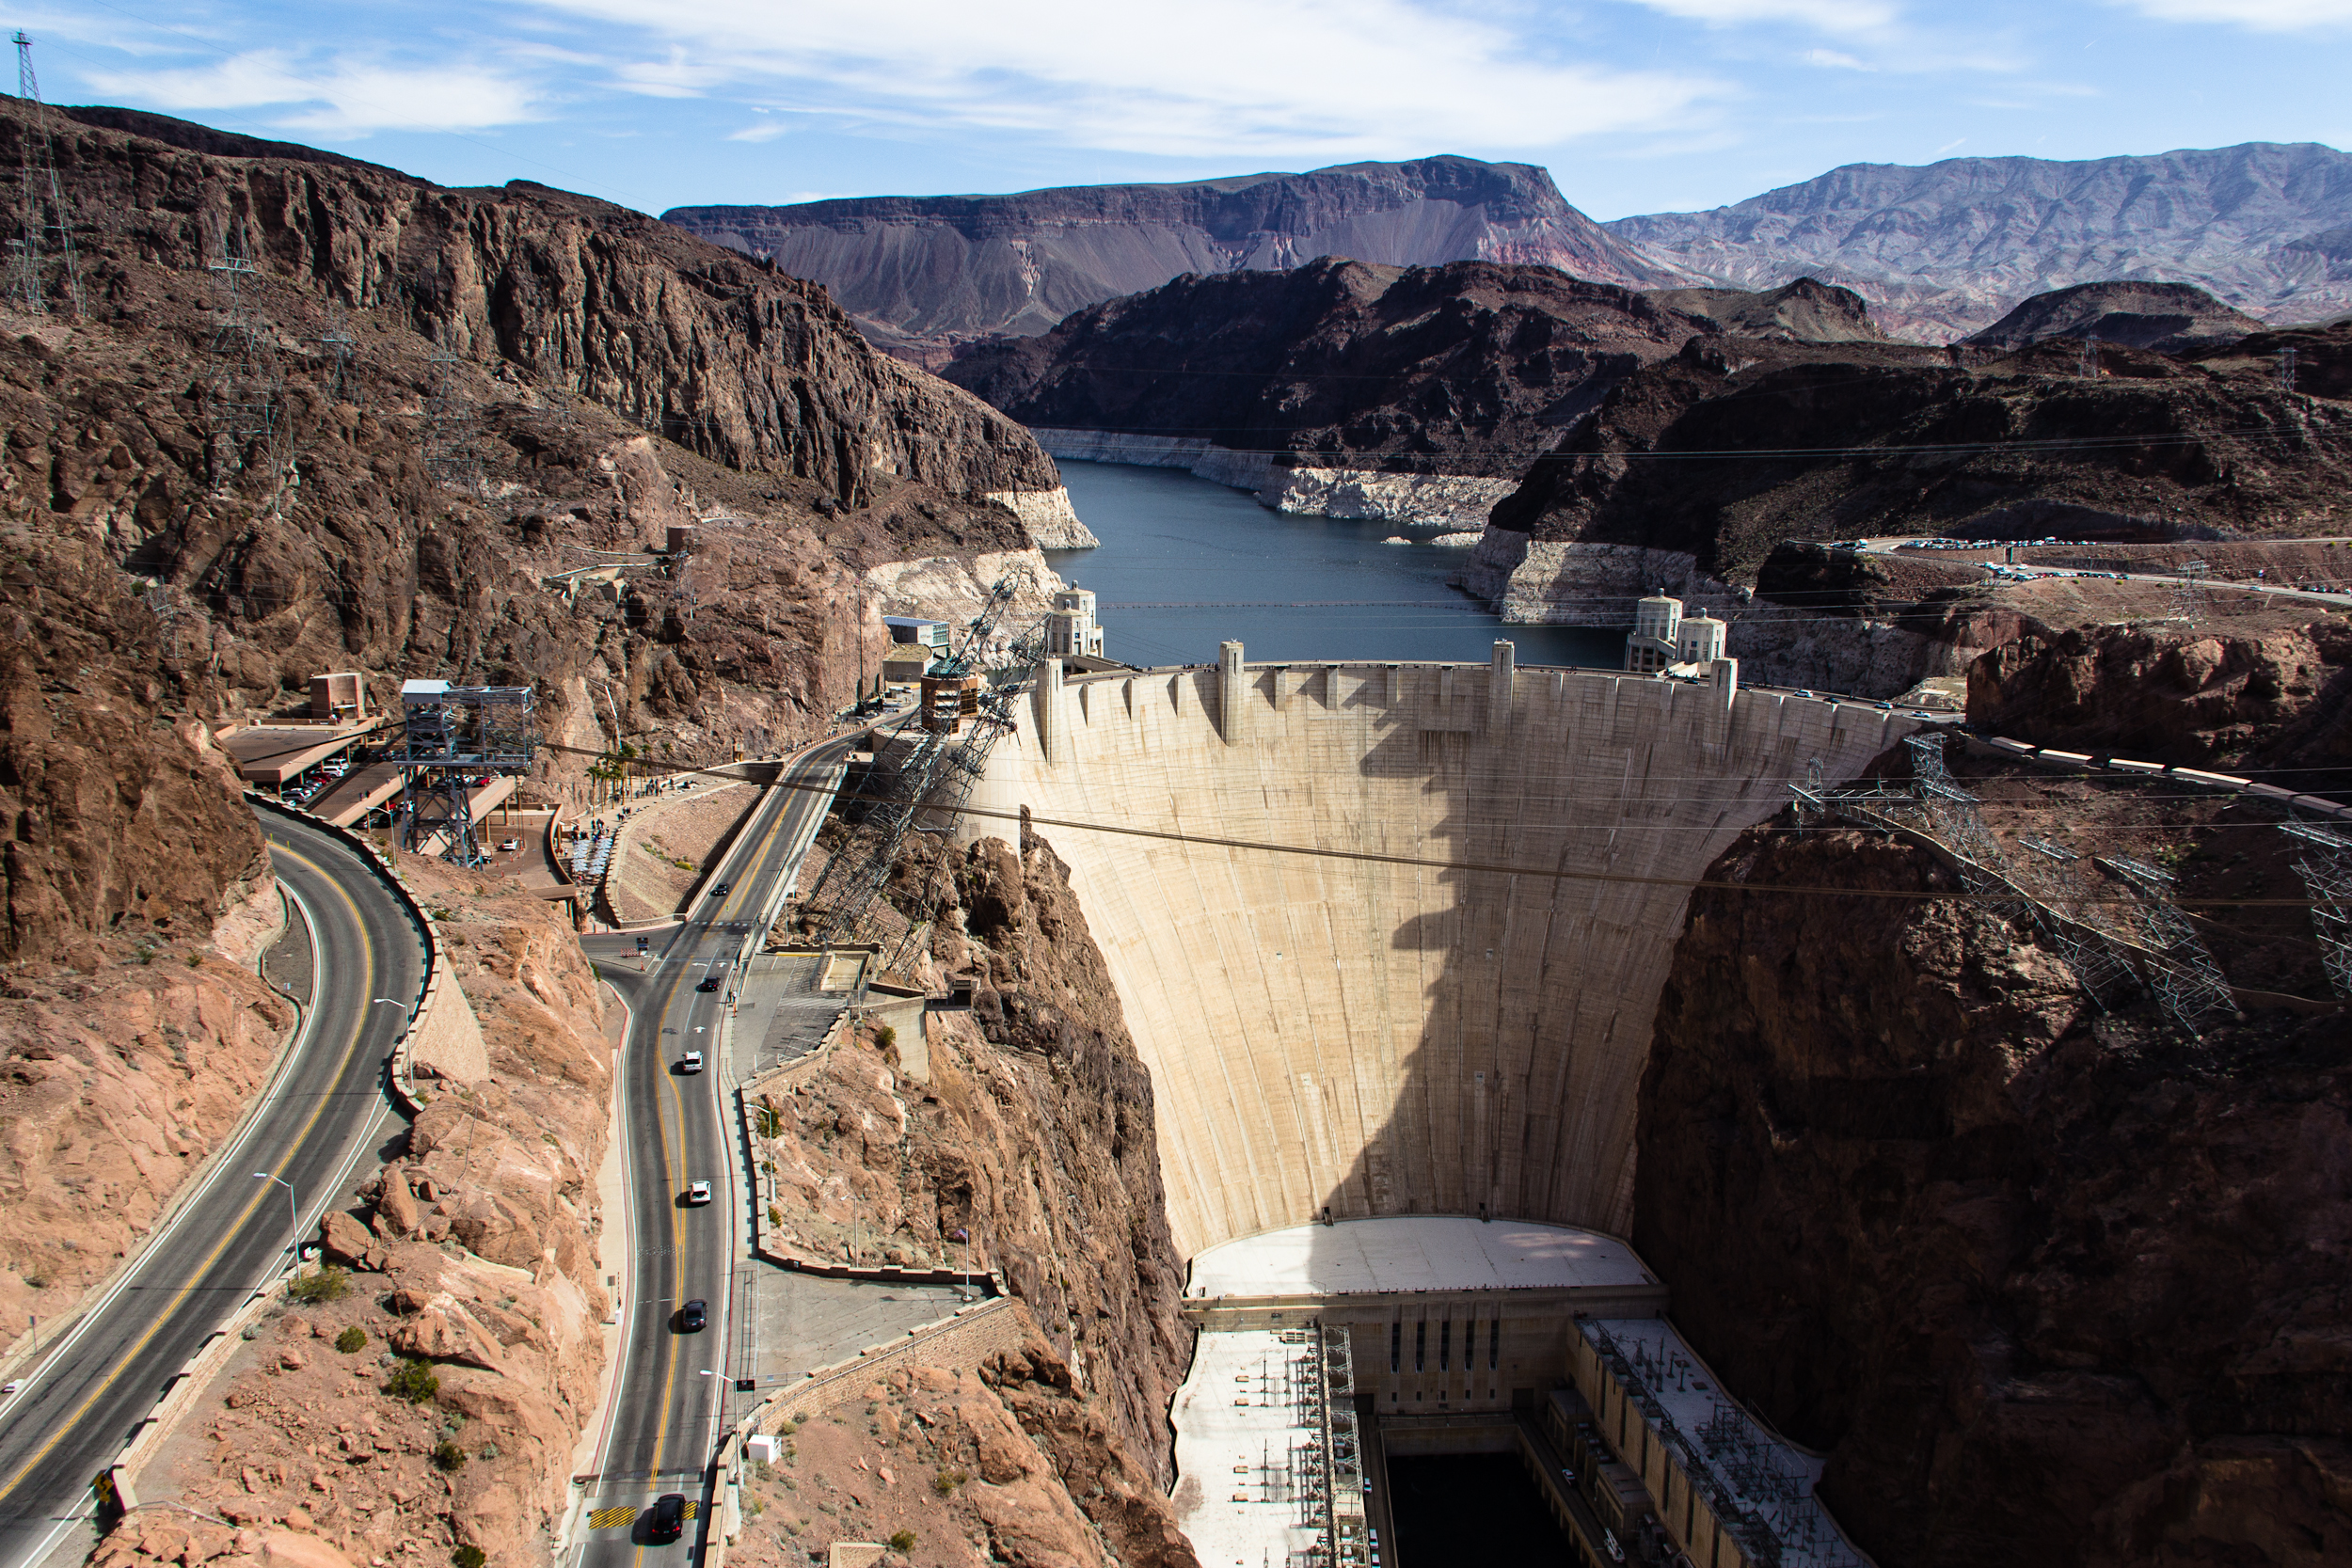 Free Hoover Dam Stock Photo - FreeImages.com |Hoover Dam Water